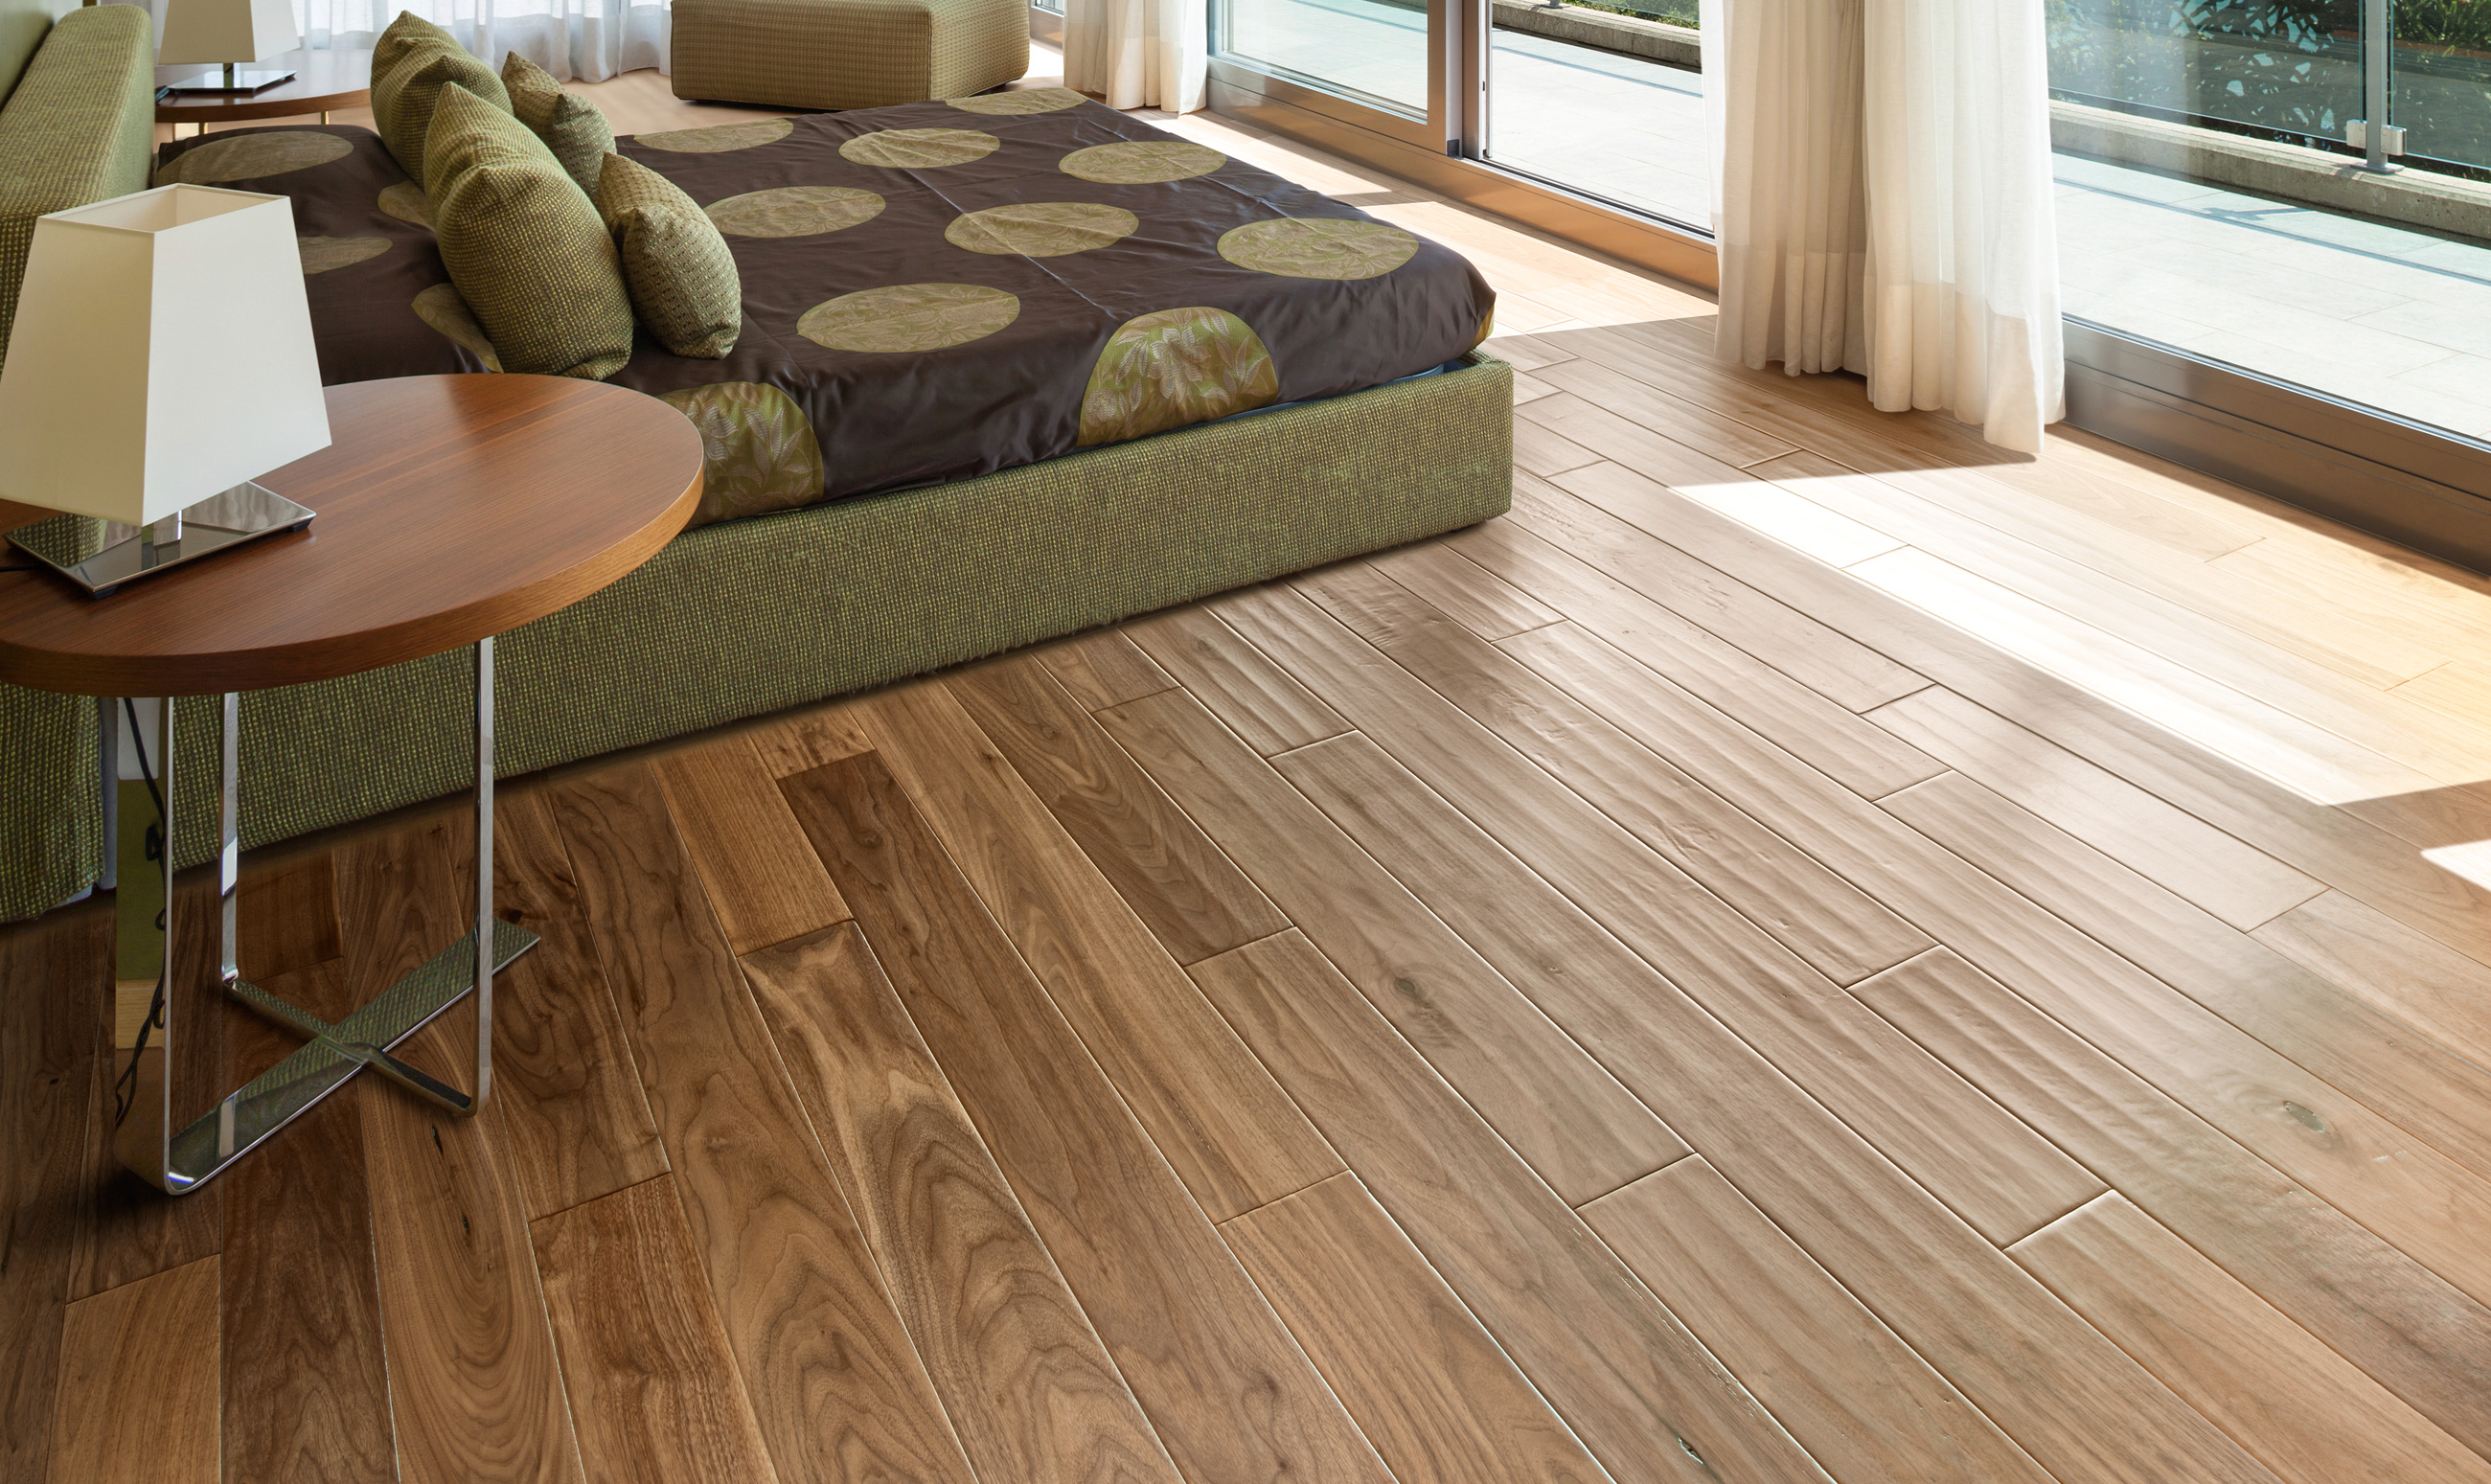 Synthetic vs. natural flooring- what is better?